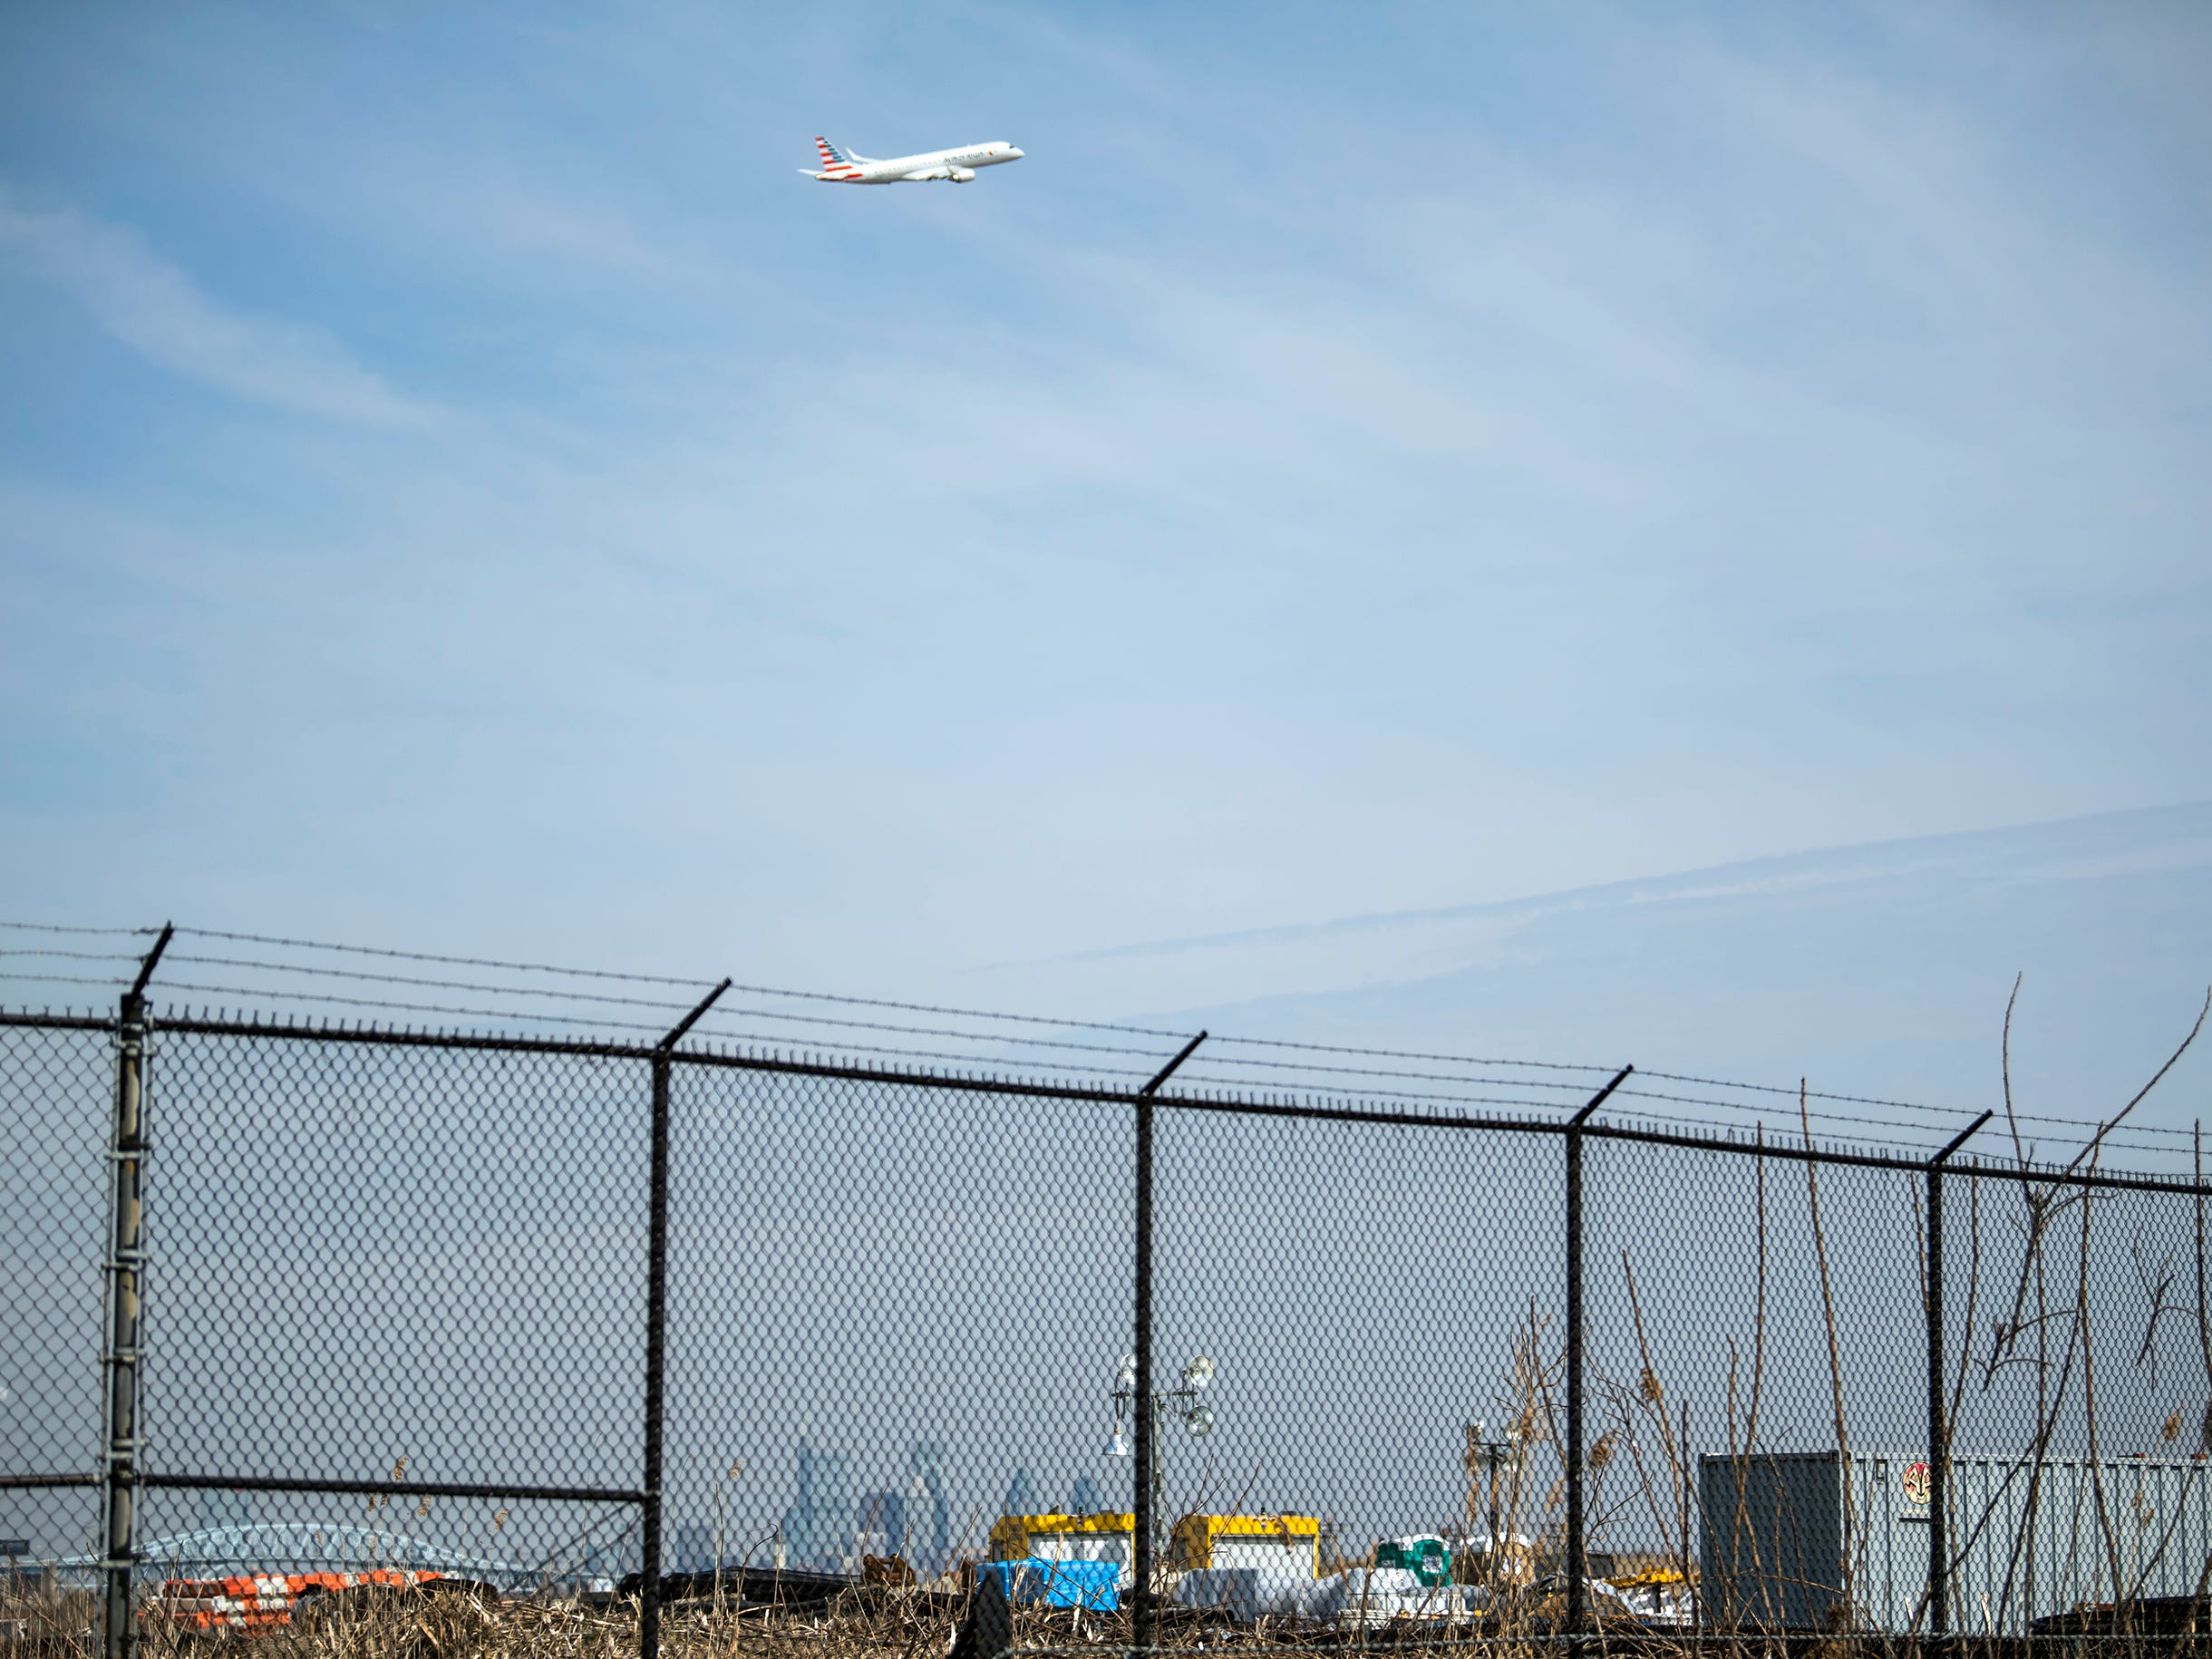 The skyline is seen as a plane takes off Thursday, March 14, 2019 at Philadelphia International Airport in Philadelphia, Pa.